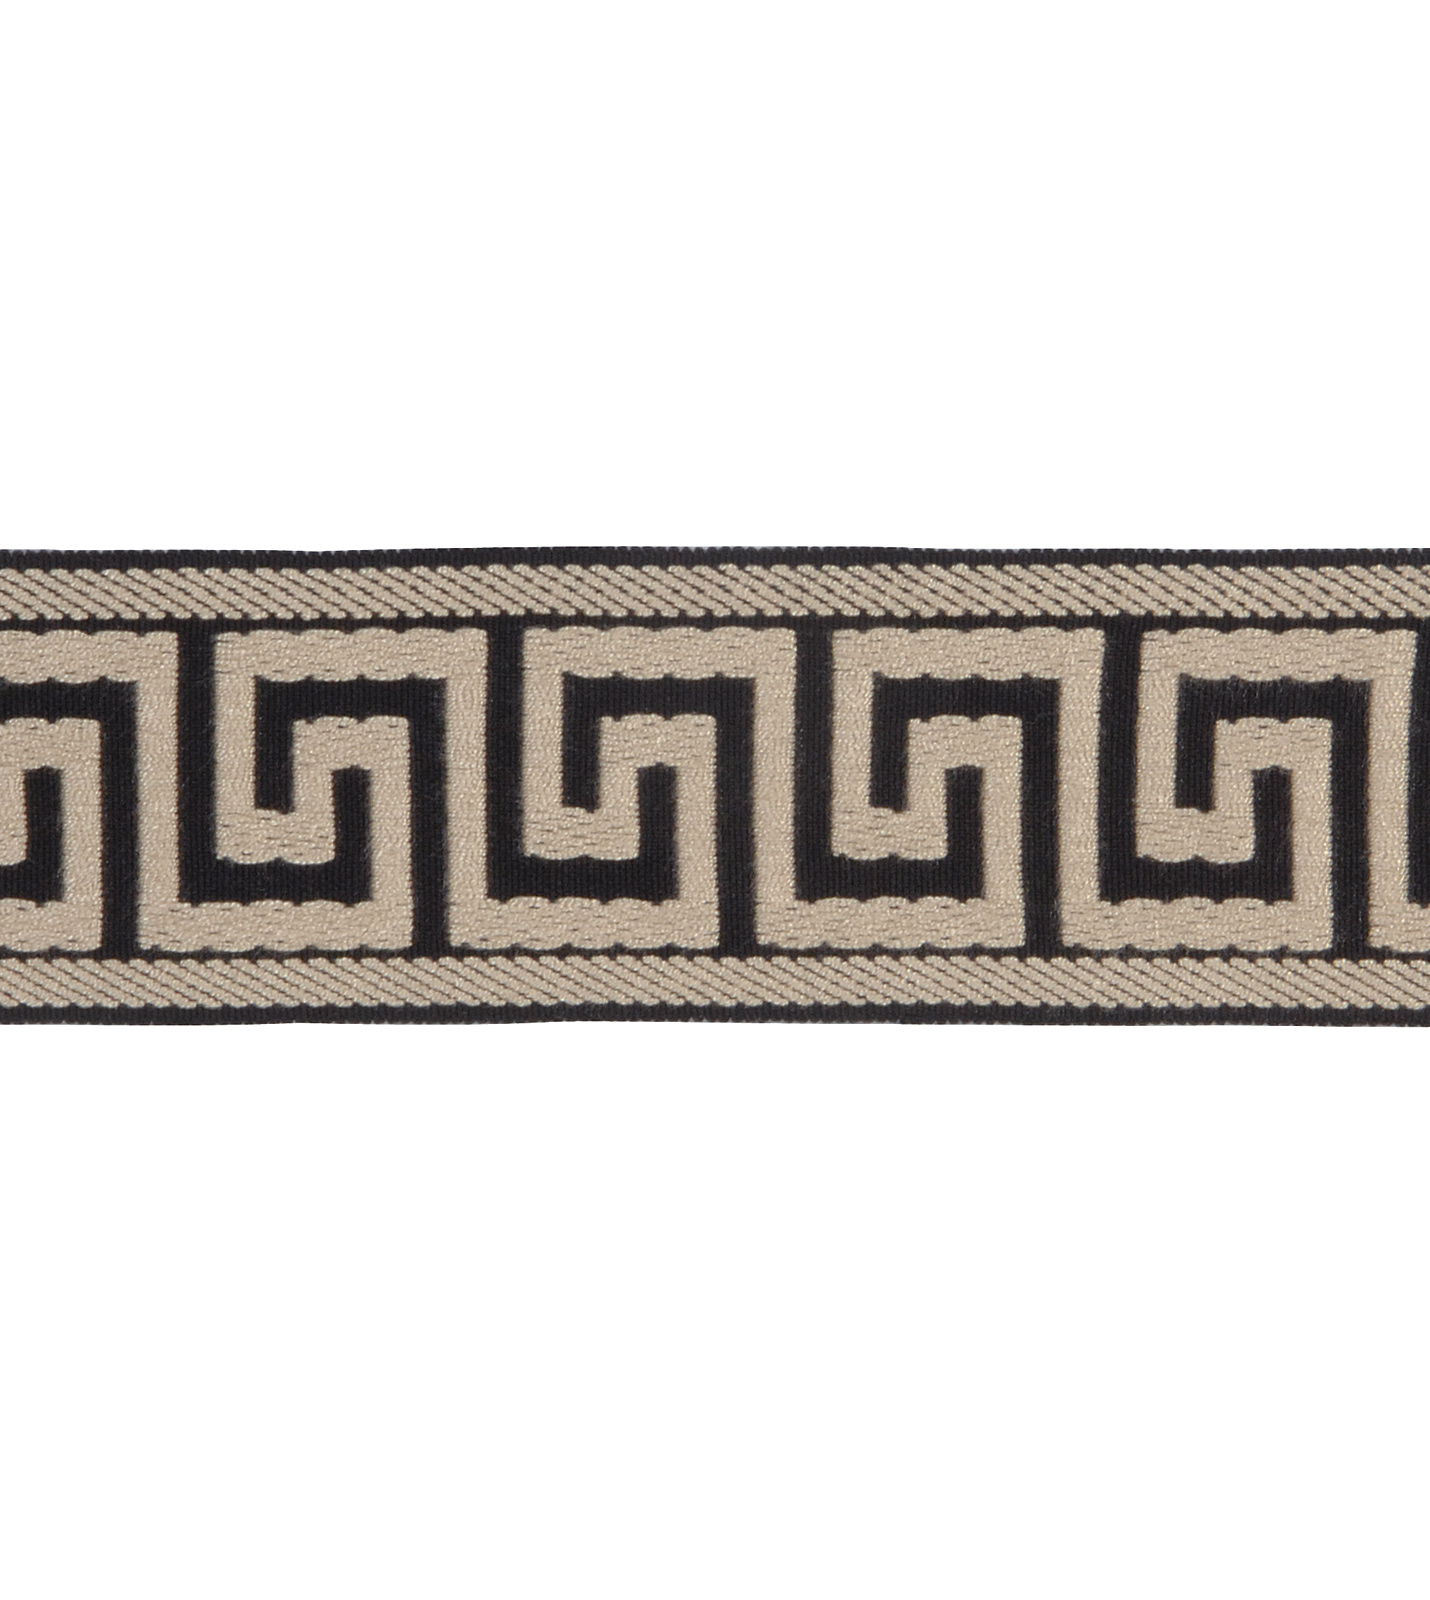 Thomasville Top Of Bed By Eastern Accents Border Greek